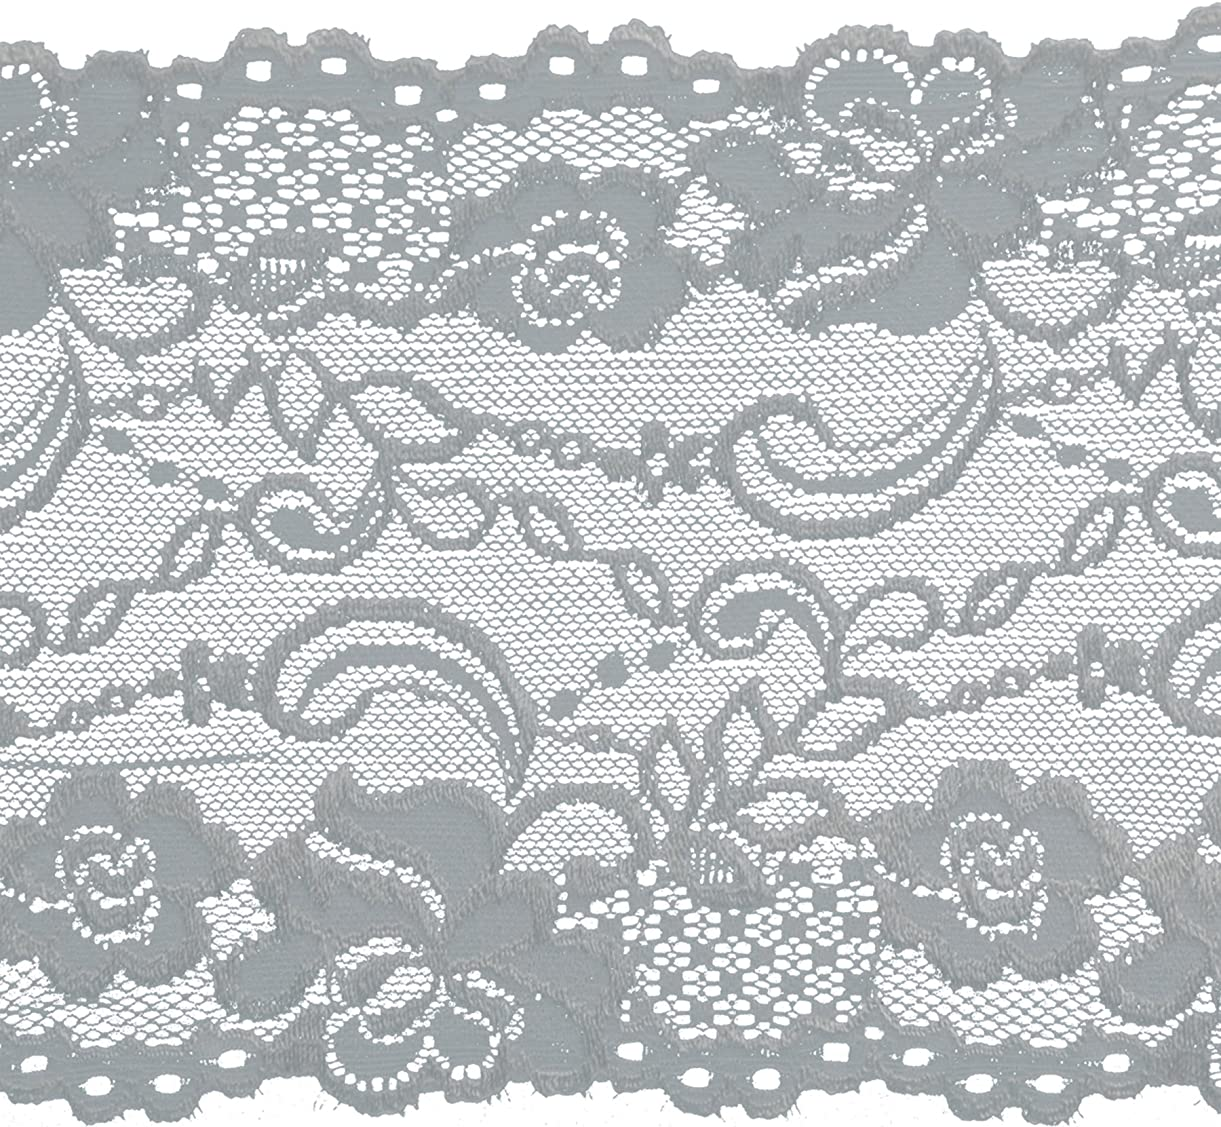 Decorative Trimmings Oyster Stretch Galloon Lace Trim 6-1/8